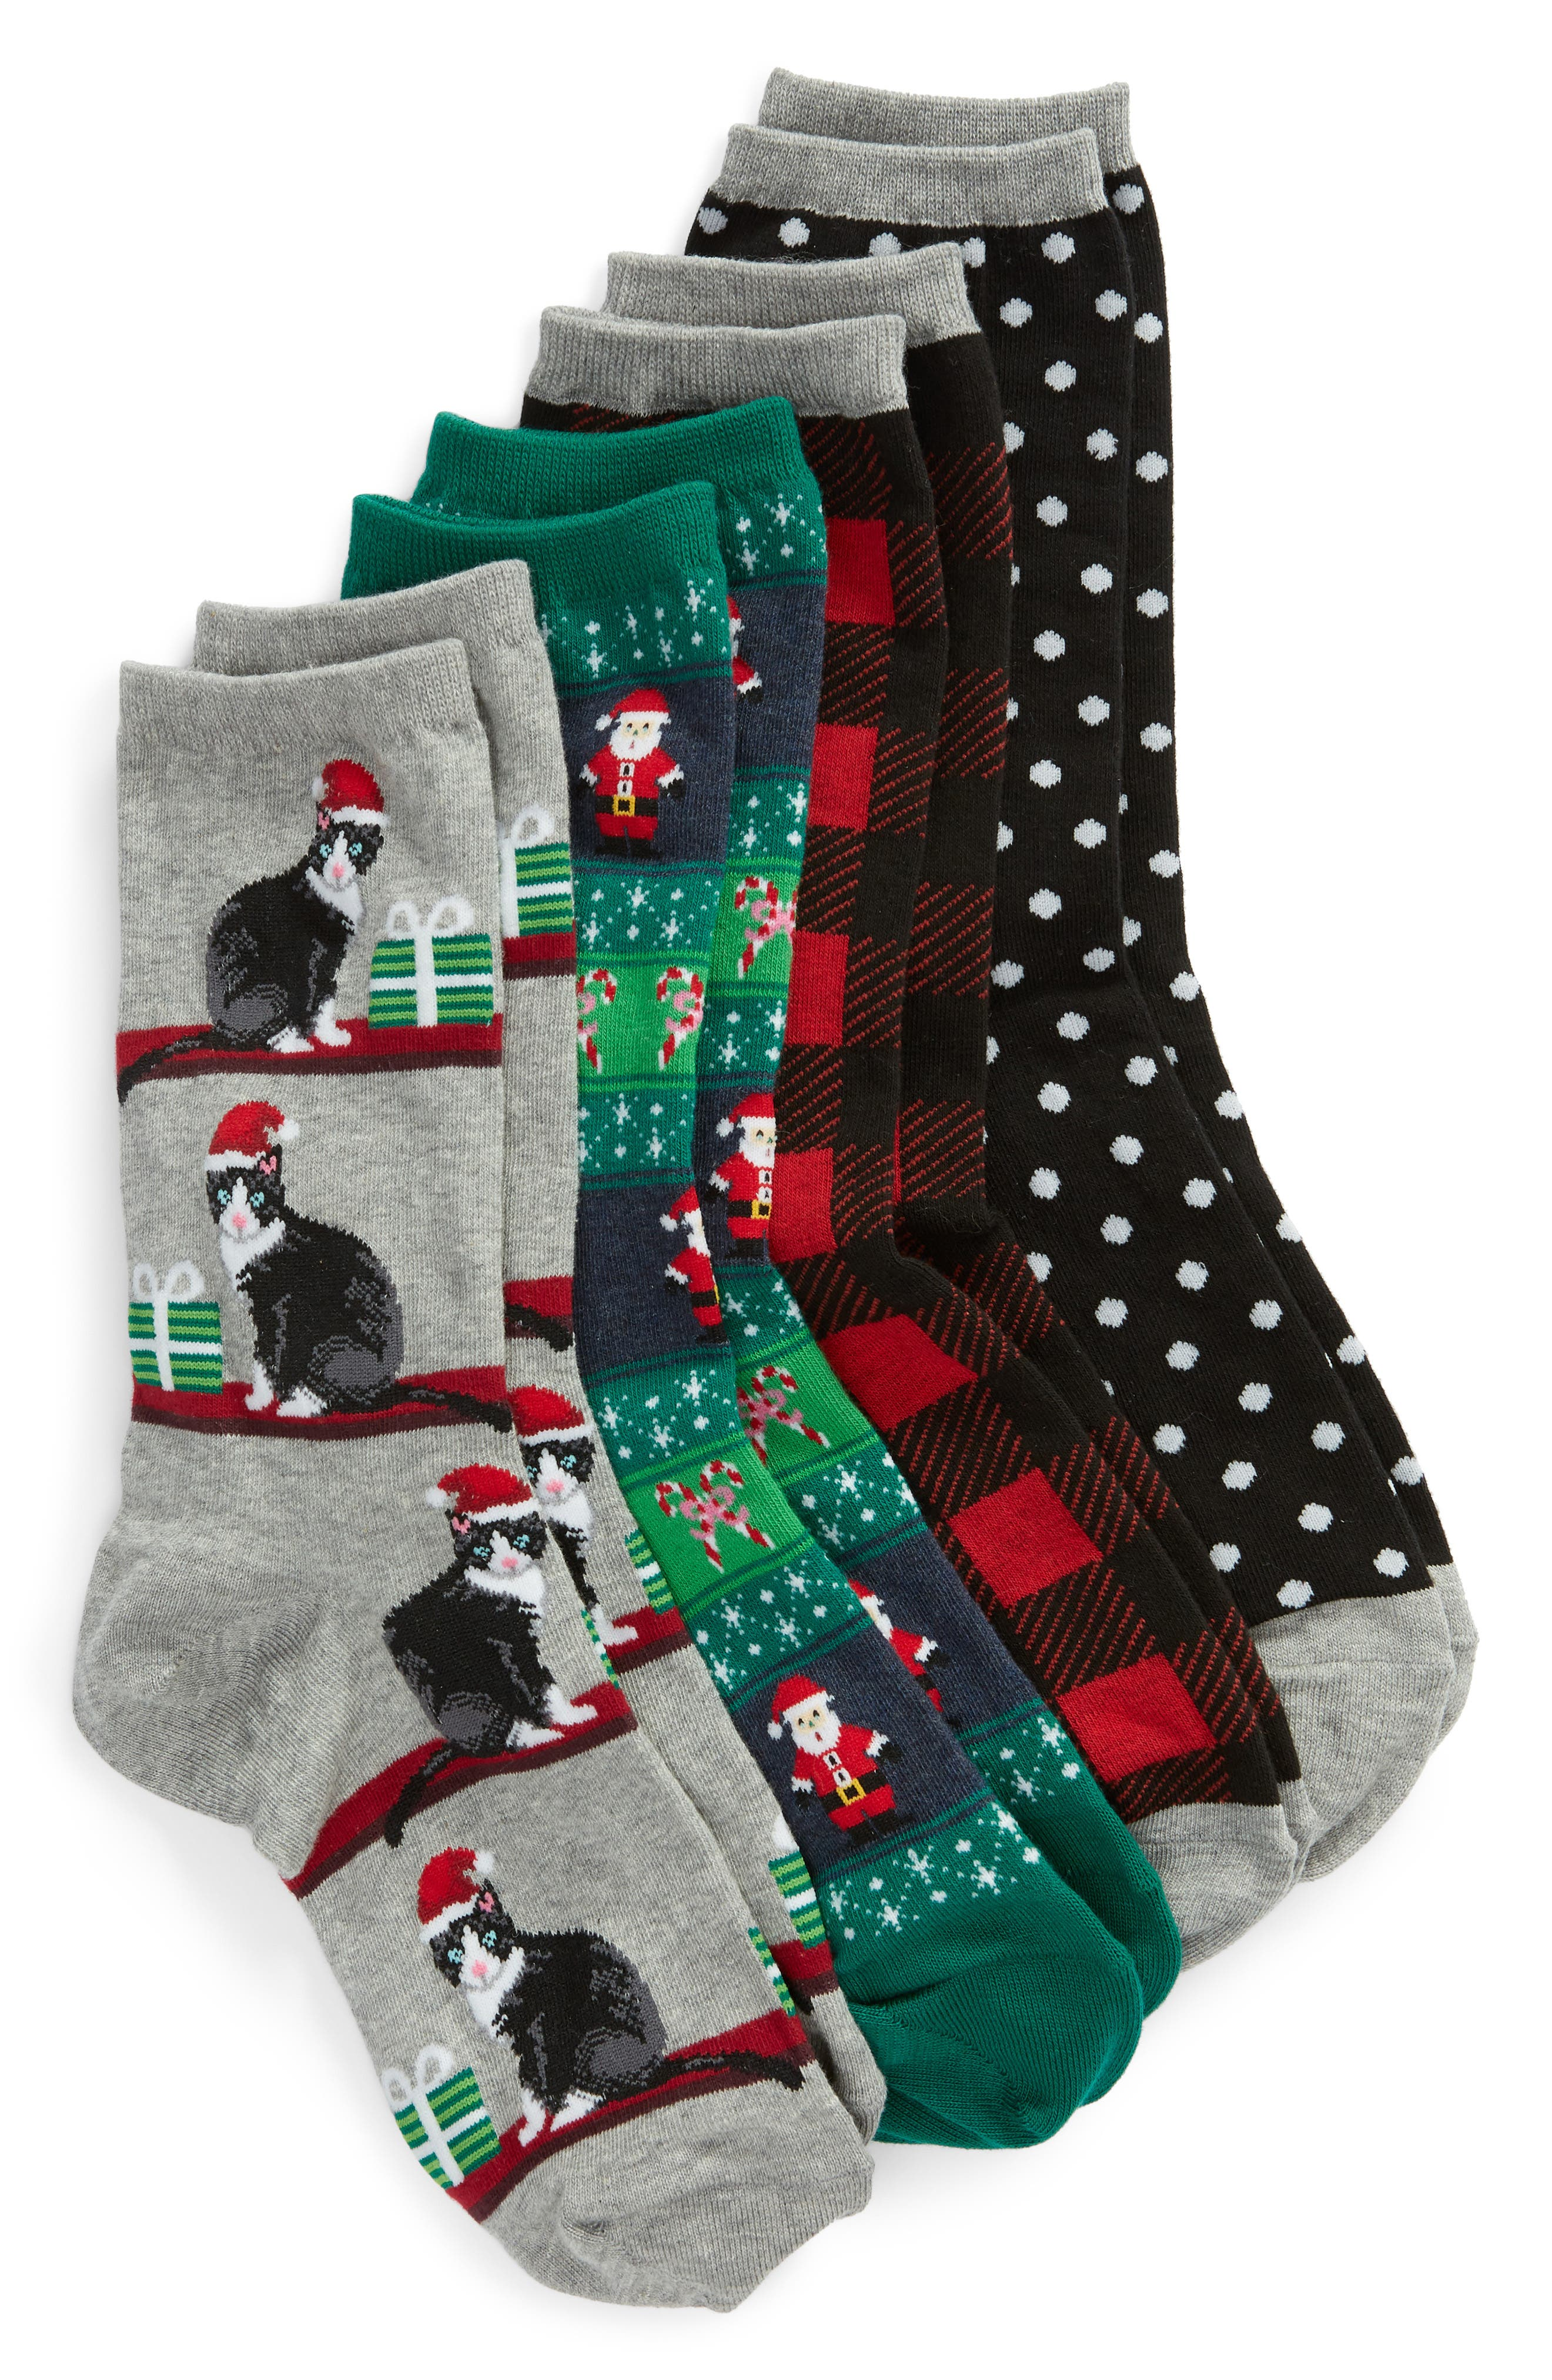 4-Pack Holiday Cats Socks in Black